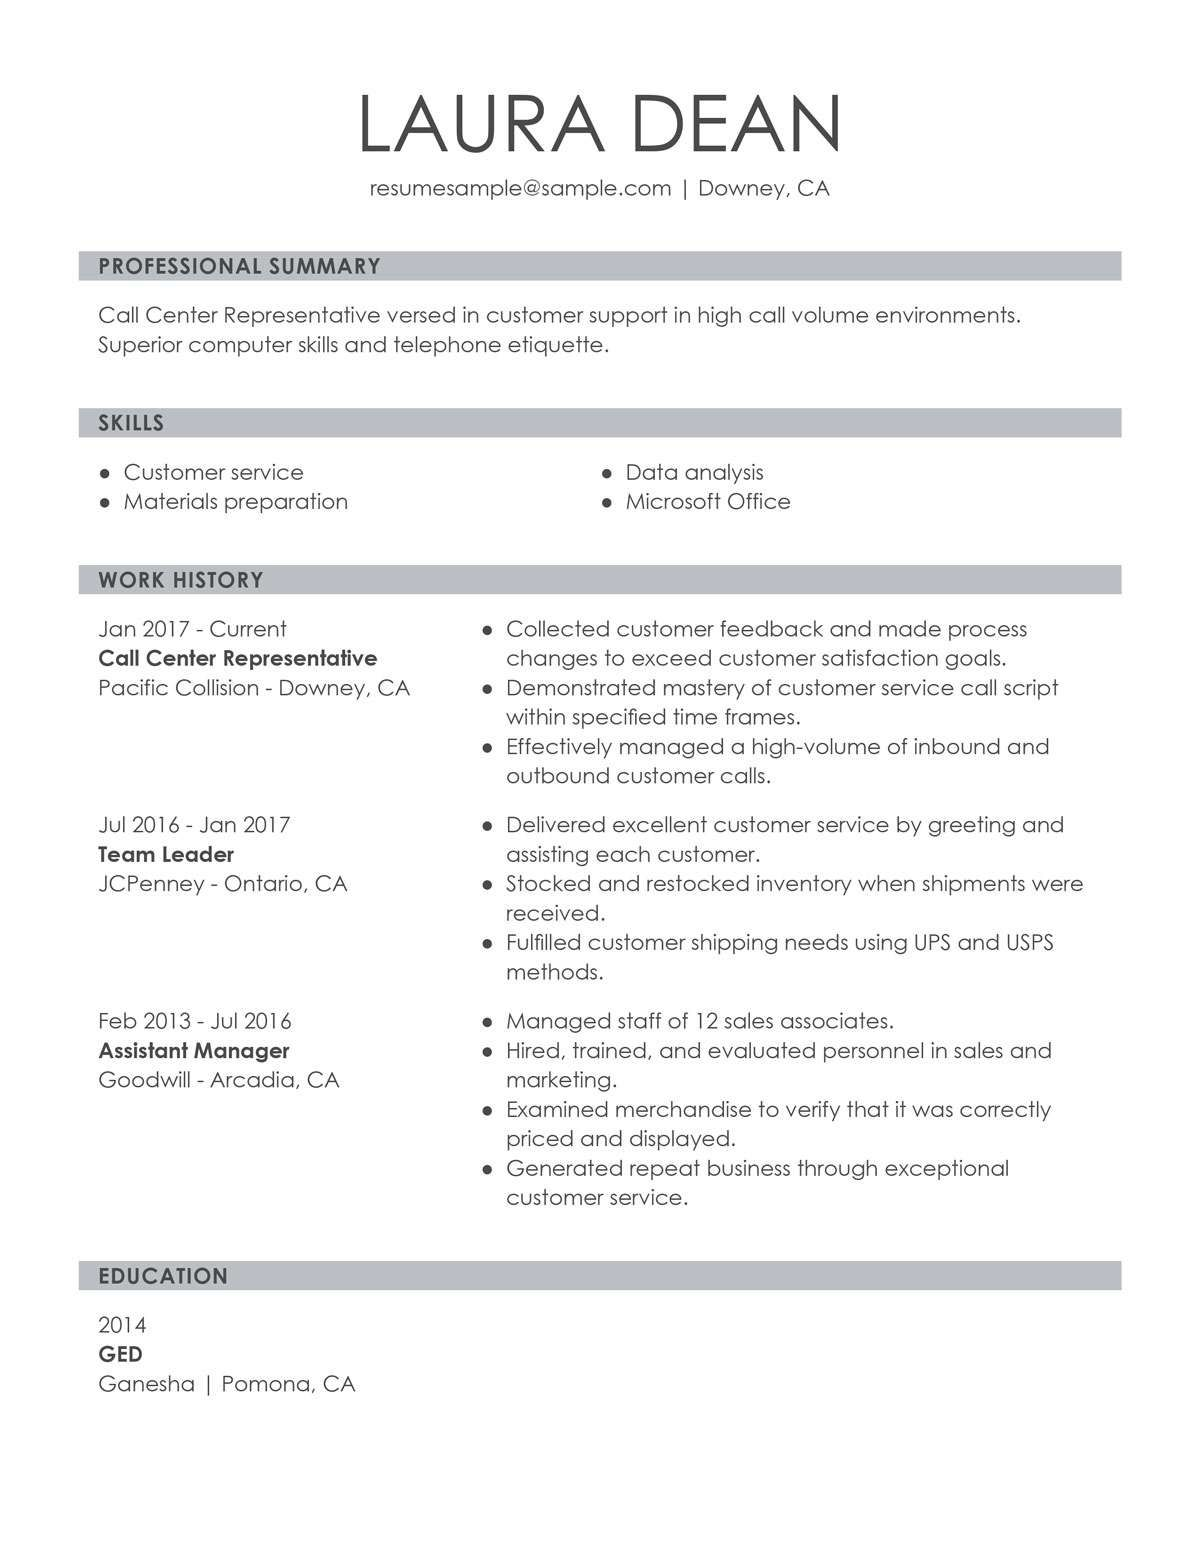 Customer Services Resume Customer service resume, Job